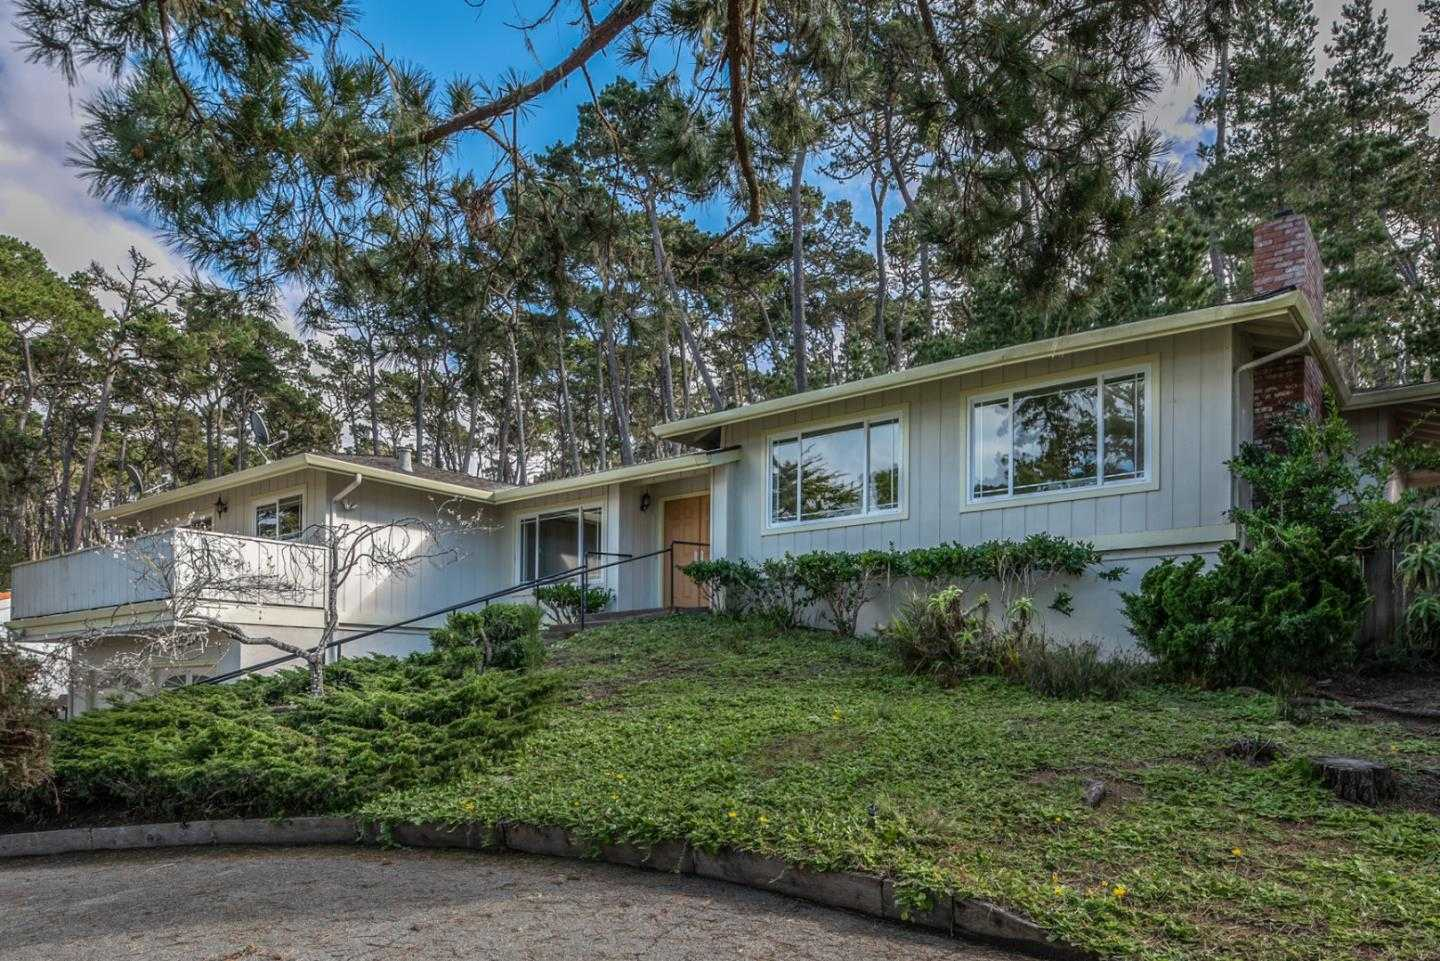 $1,275,000 - 3Br/2Ba -  for Sale in Pebble Beach